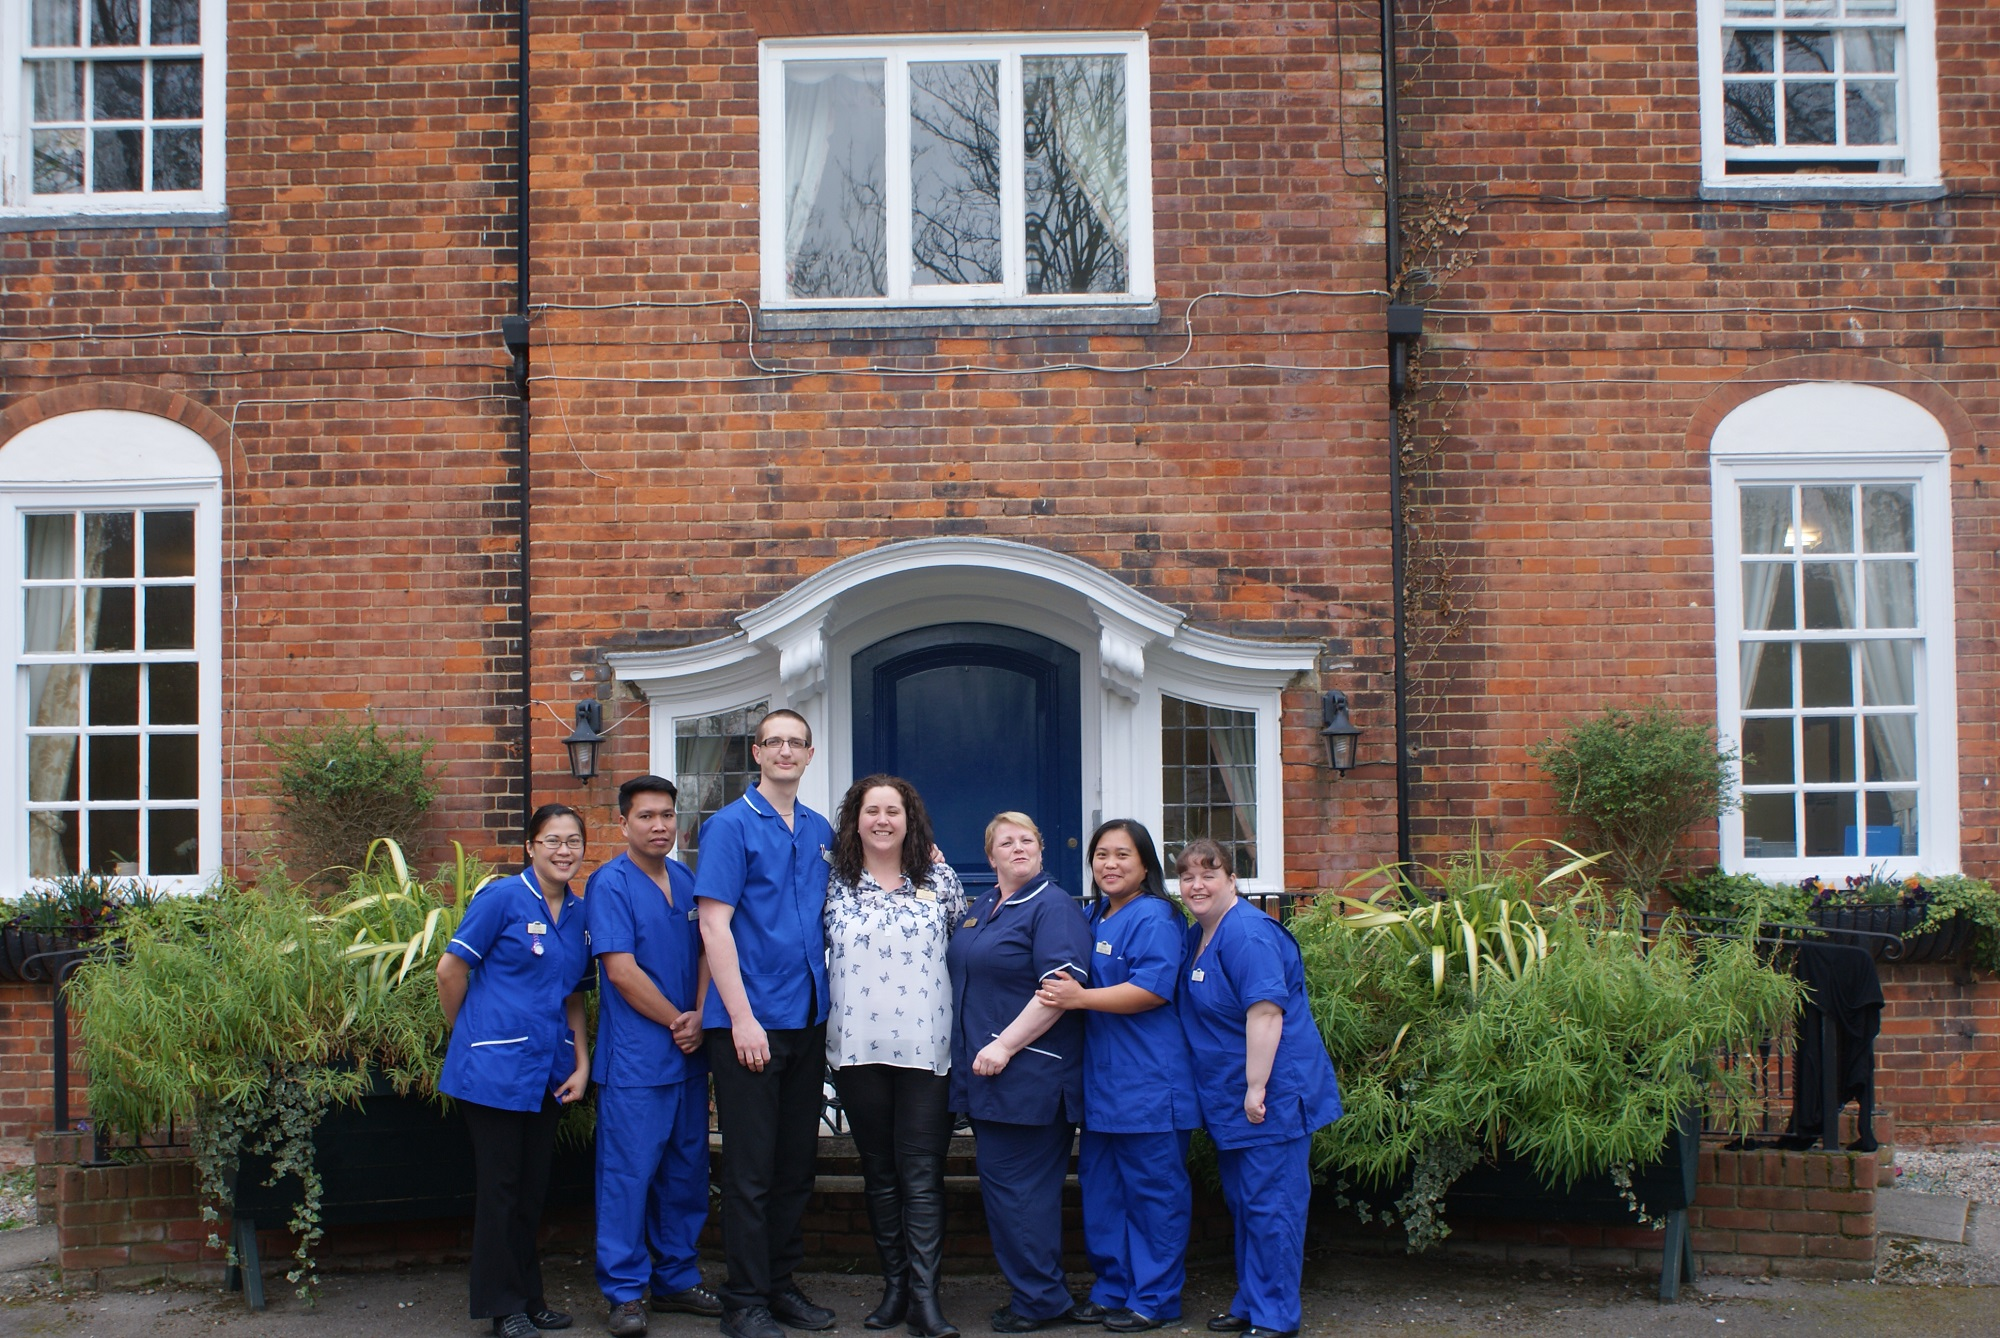 Staff at Firstlings care home in Heybridge